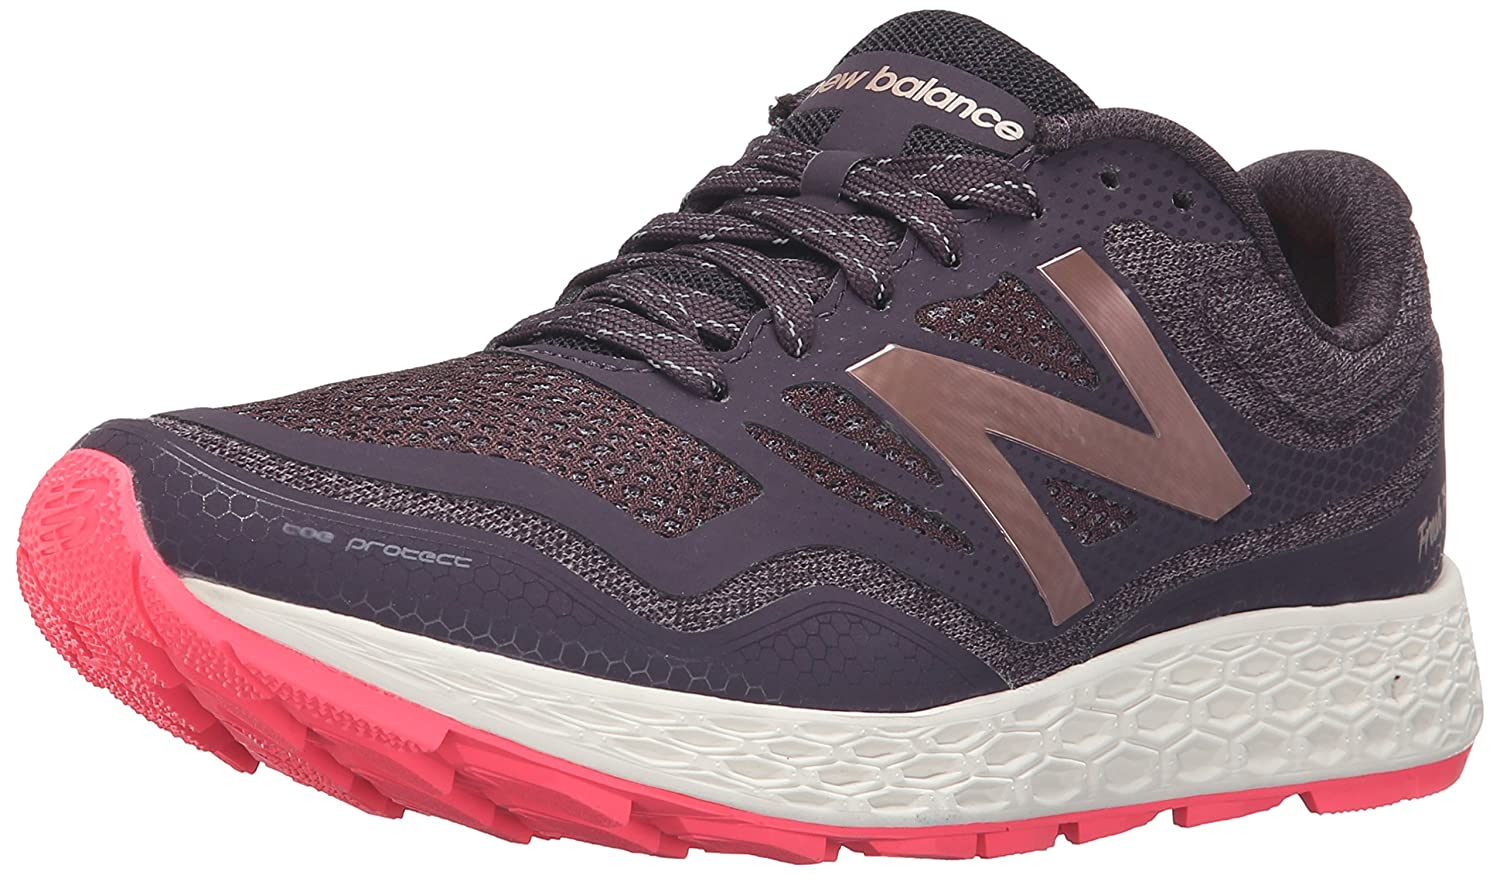 New Balance Women's Fresh Foam Gobi Neutral Trail Running Shoe B019CV85UE 11 B(M) US|Grey/Pink